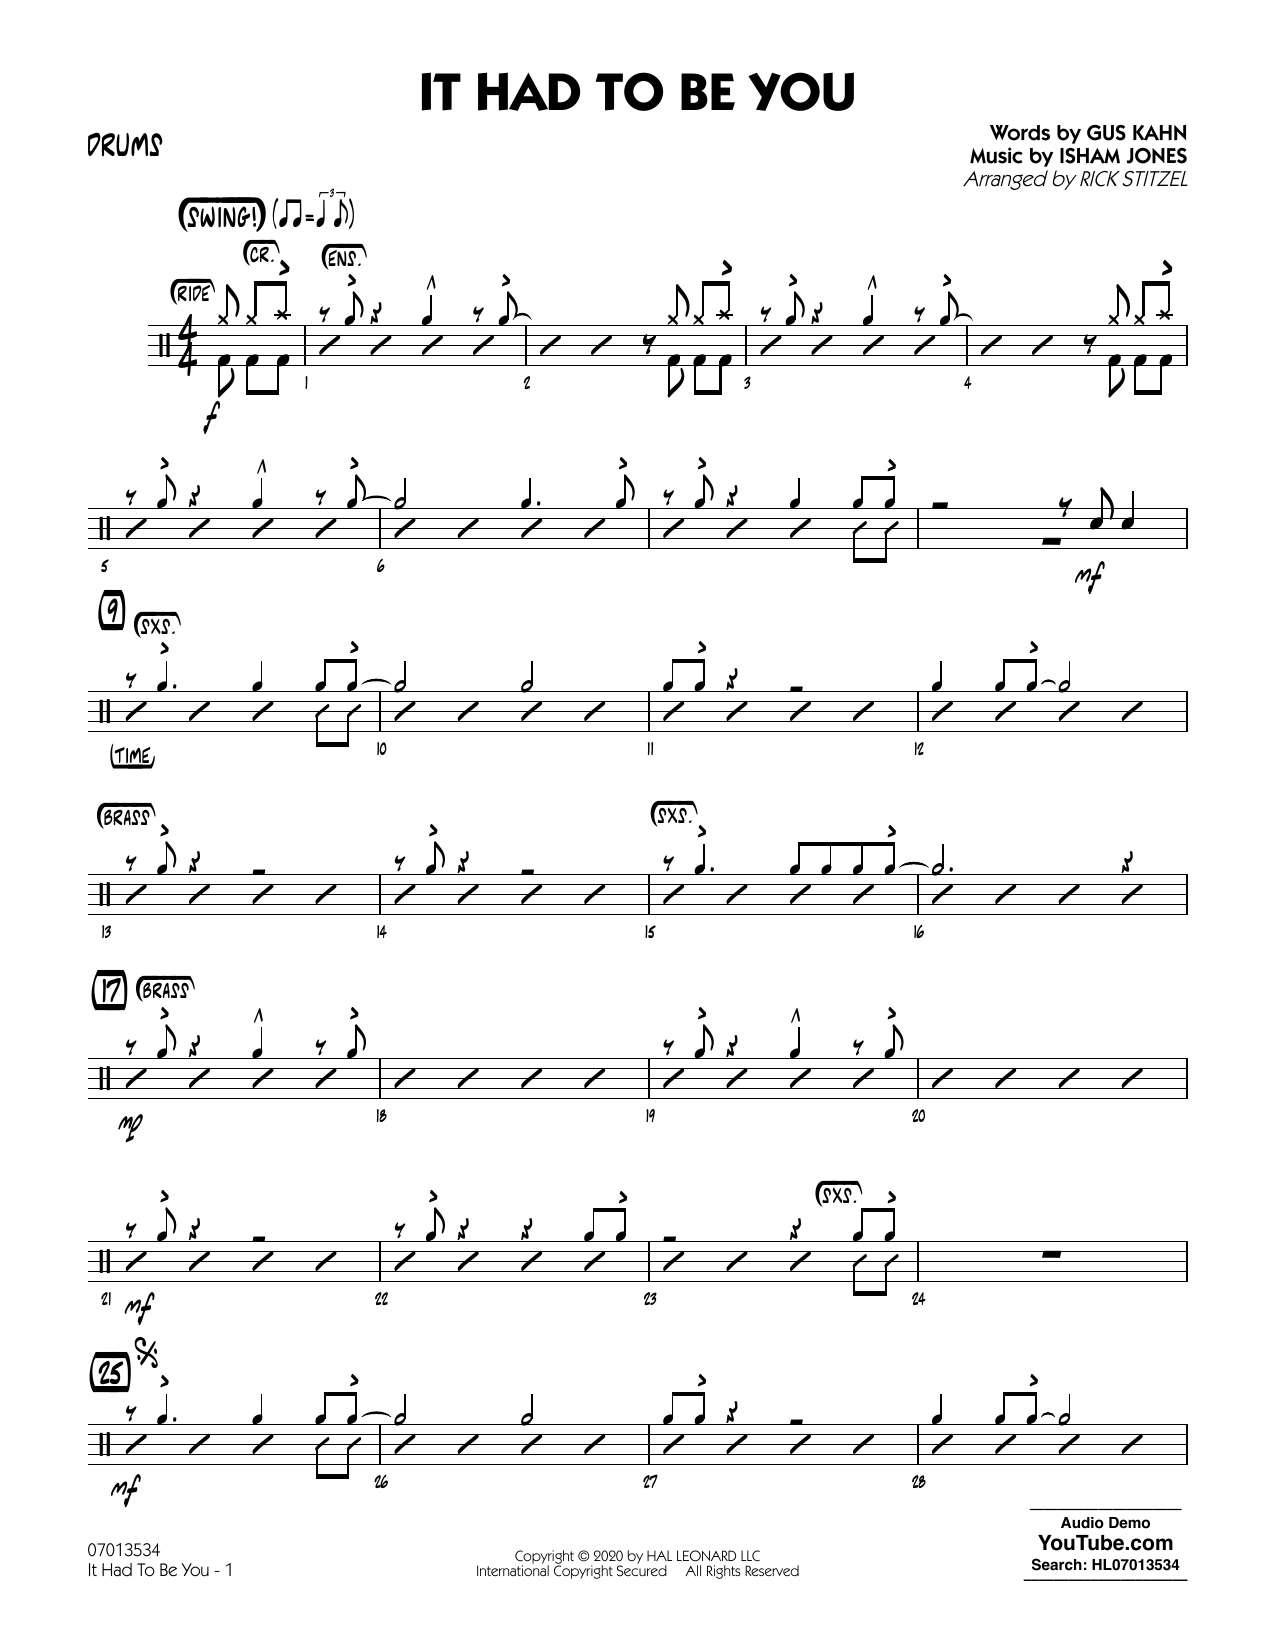 It Had to Be You (arr. Rick Stitzel) - Drums Sheet Music